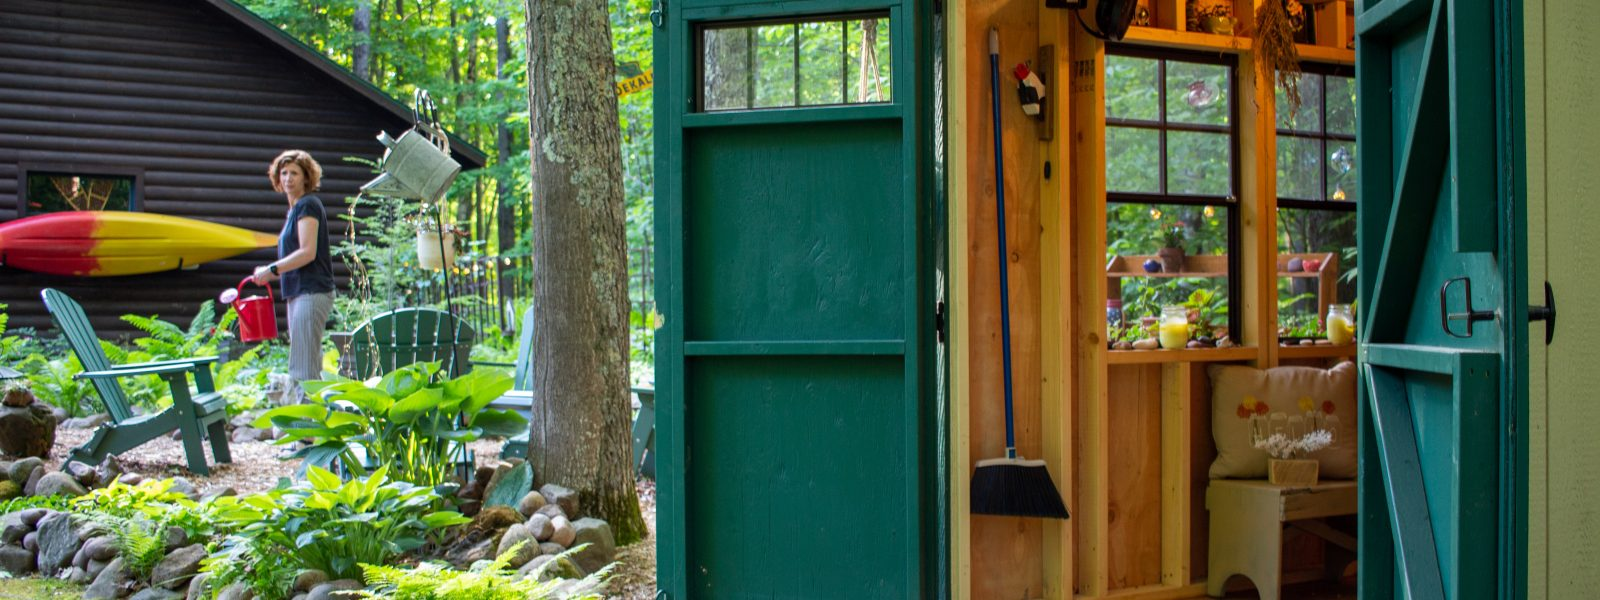 happy gardening in the perfect backyard she shed ideal for minnesota and wisconsin